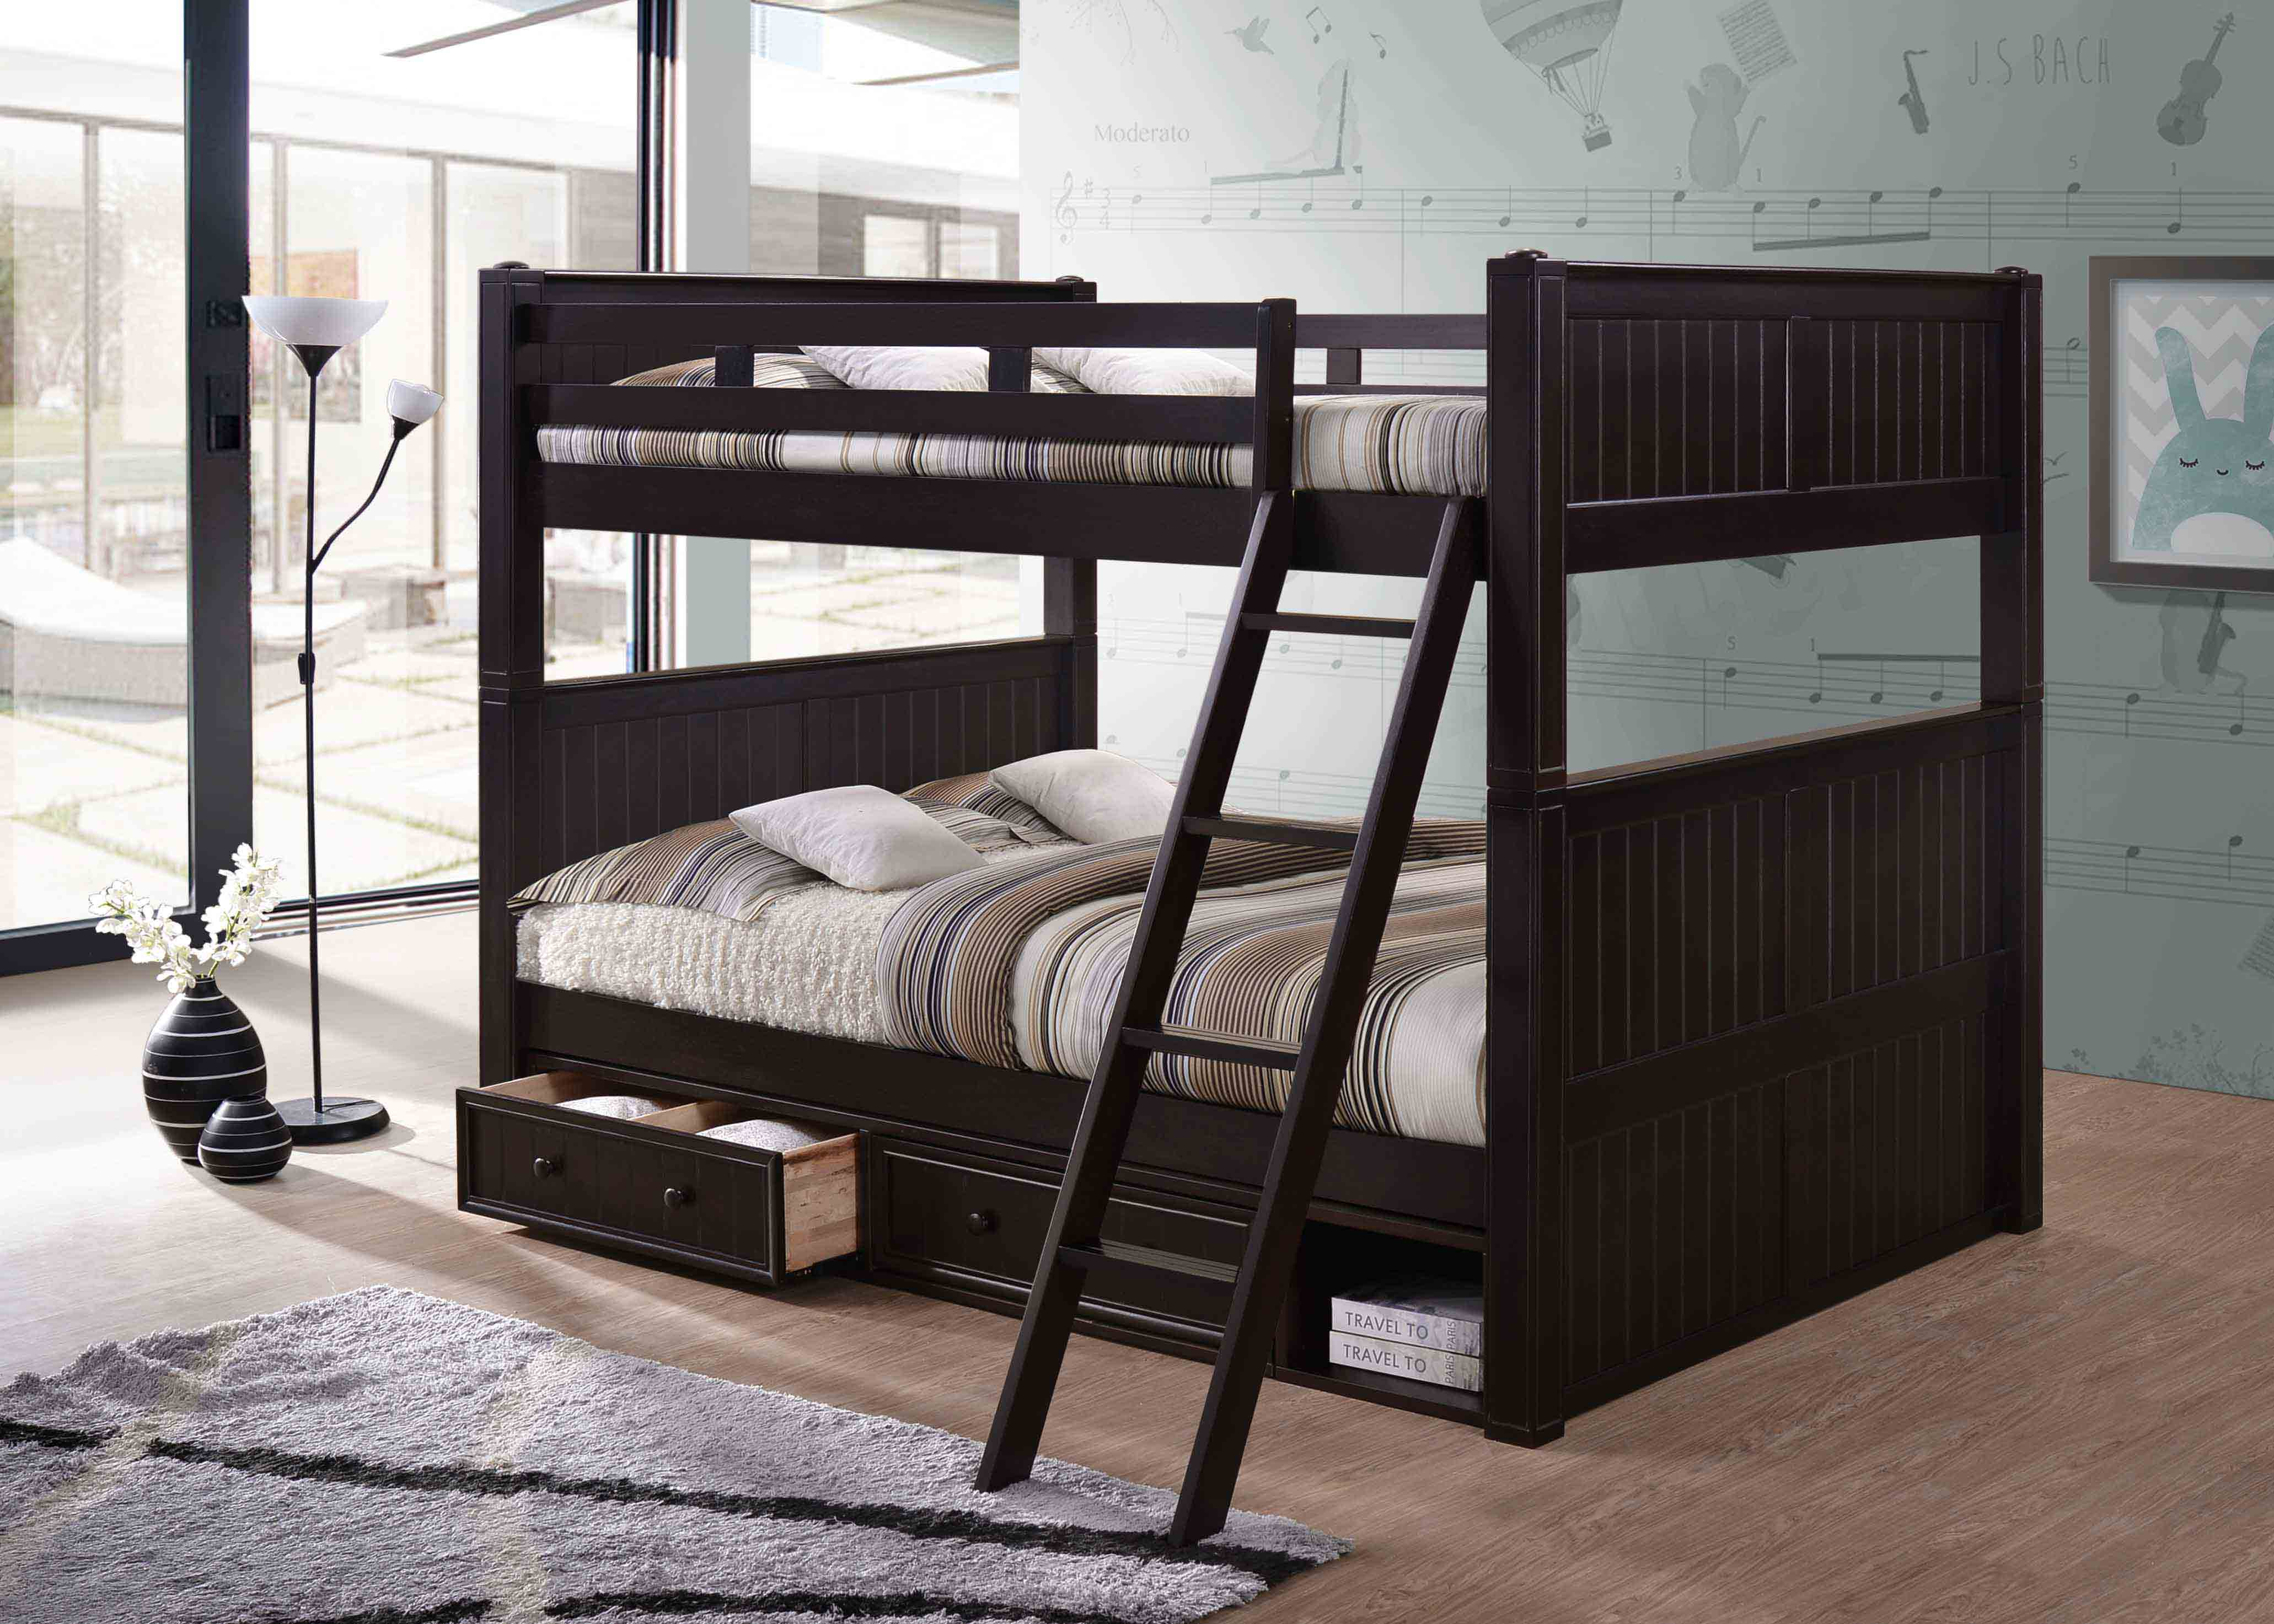 queen bed coolest ideas loft and beds loveliest adults for